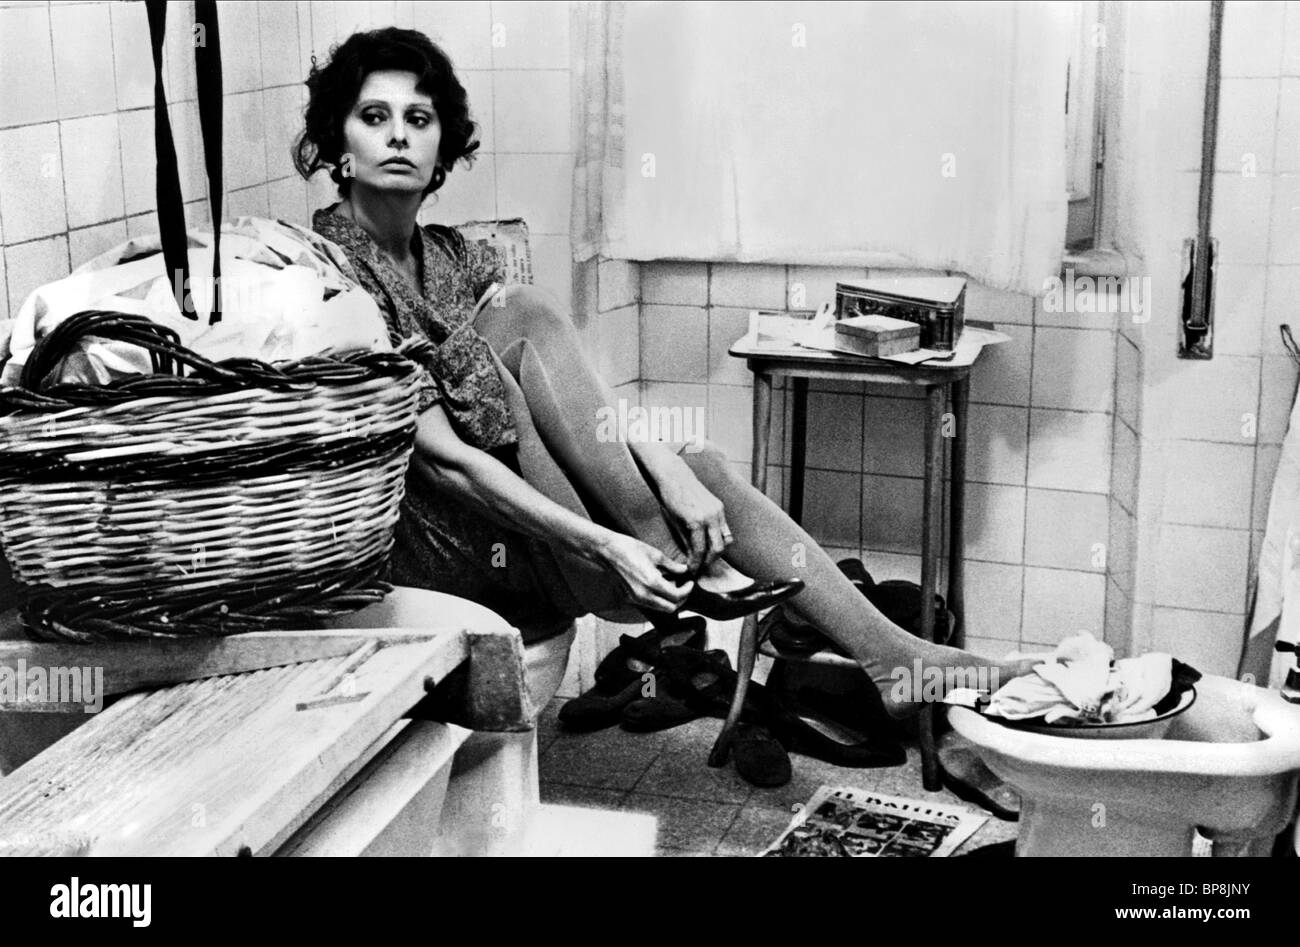 stock photos stock images alamy sophia loren a special day una giornata particolare a great day 1977